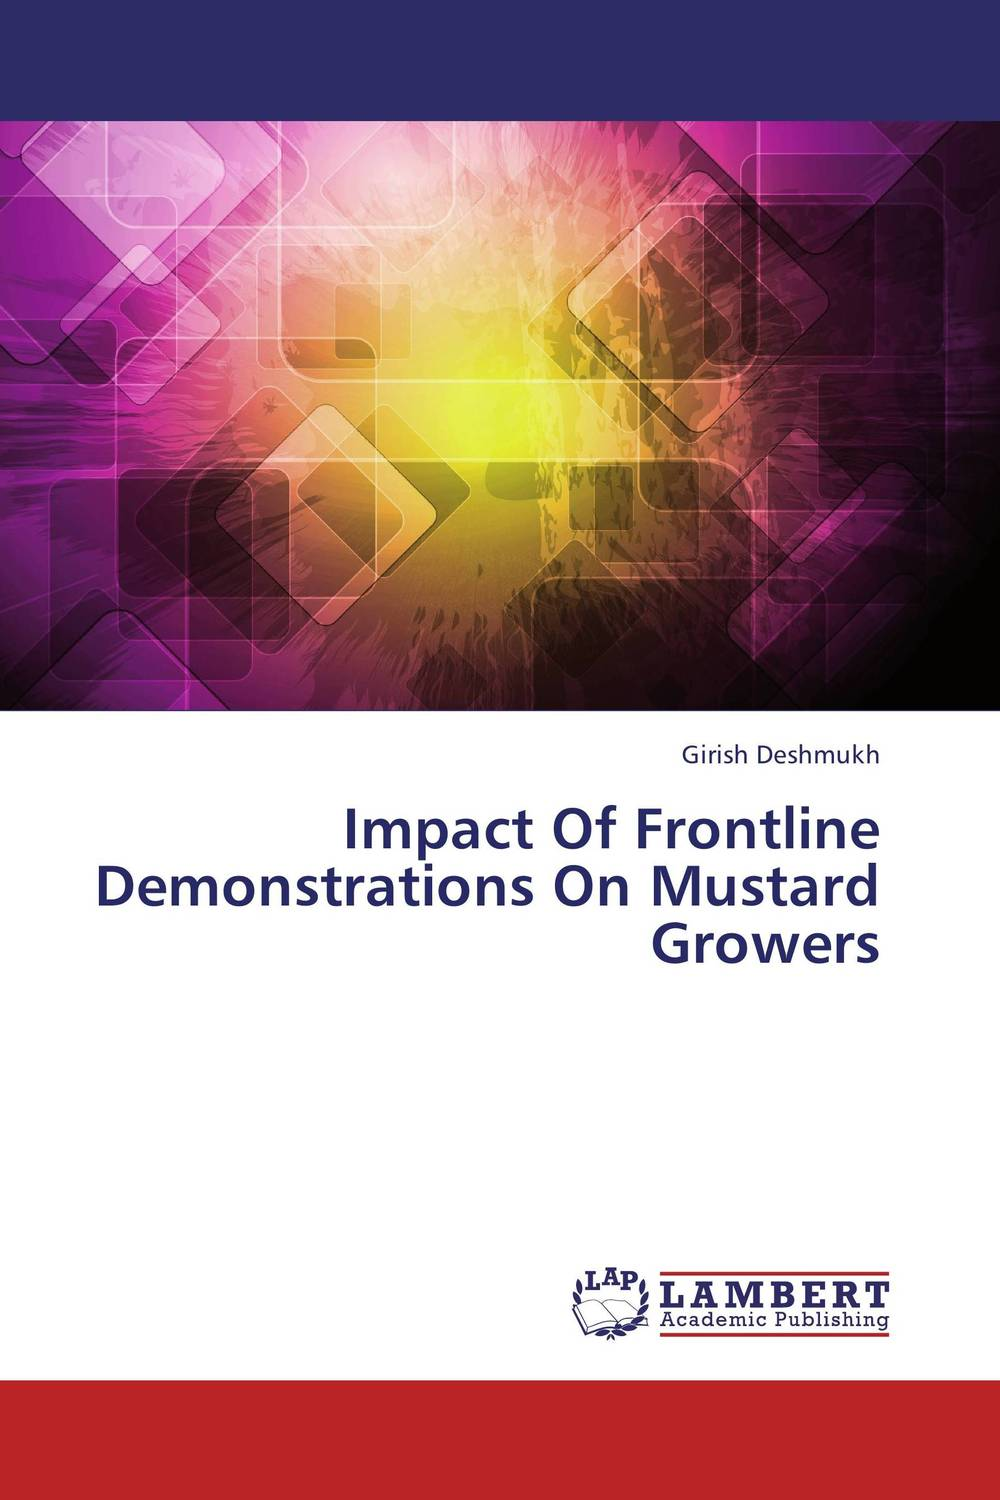 Impact Of Frontline Demonstrations On Mustard Growers the impact of work engagement on frontline employees' outcomes